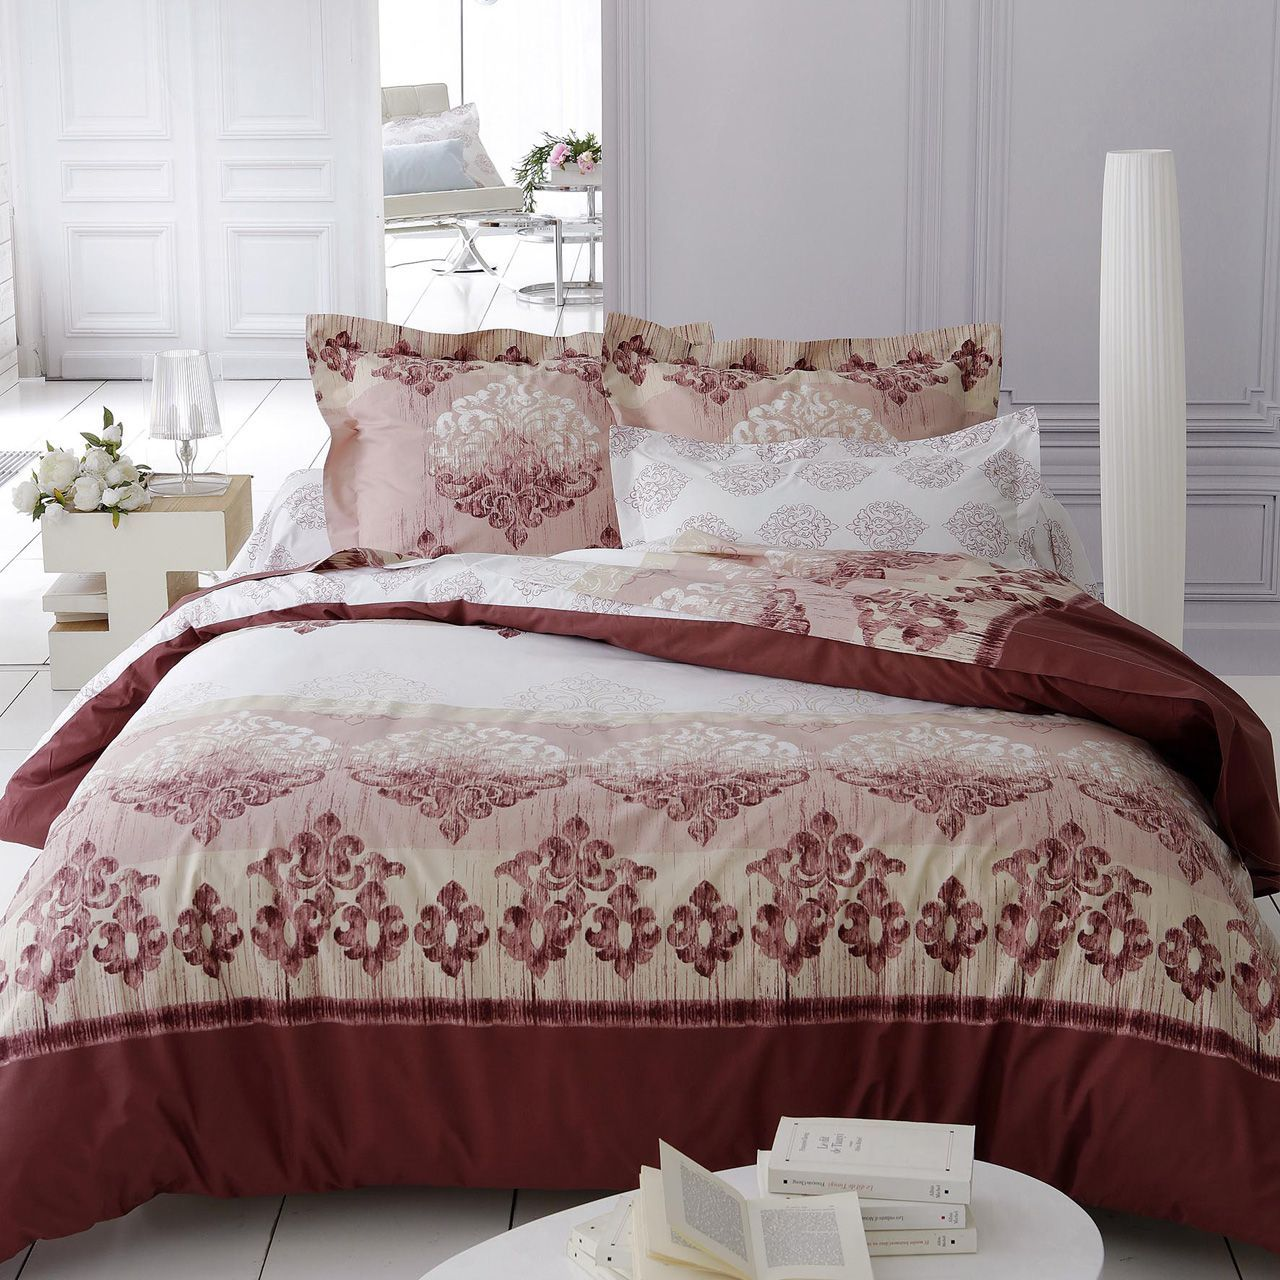 drap housse v rone marsala blanc motifs baroques percale 200x200. Black Bedroom Furniture Sets. Home Design Ideas